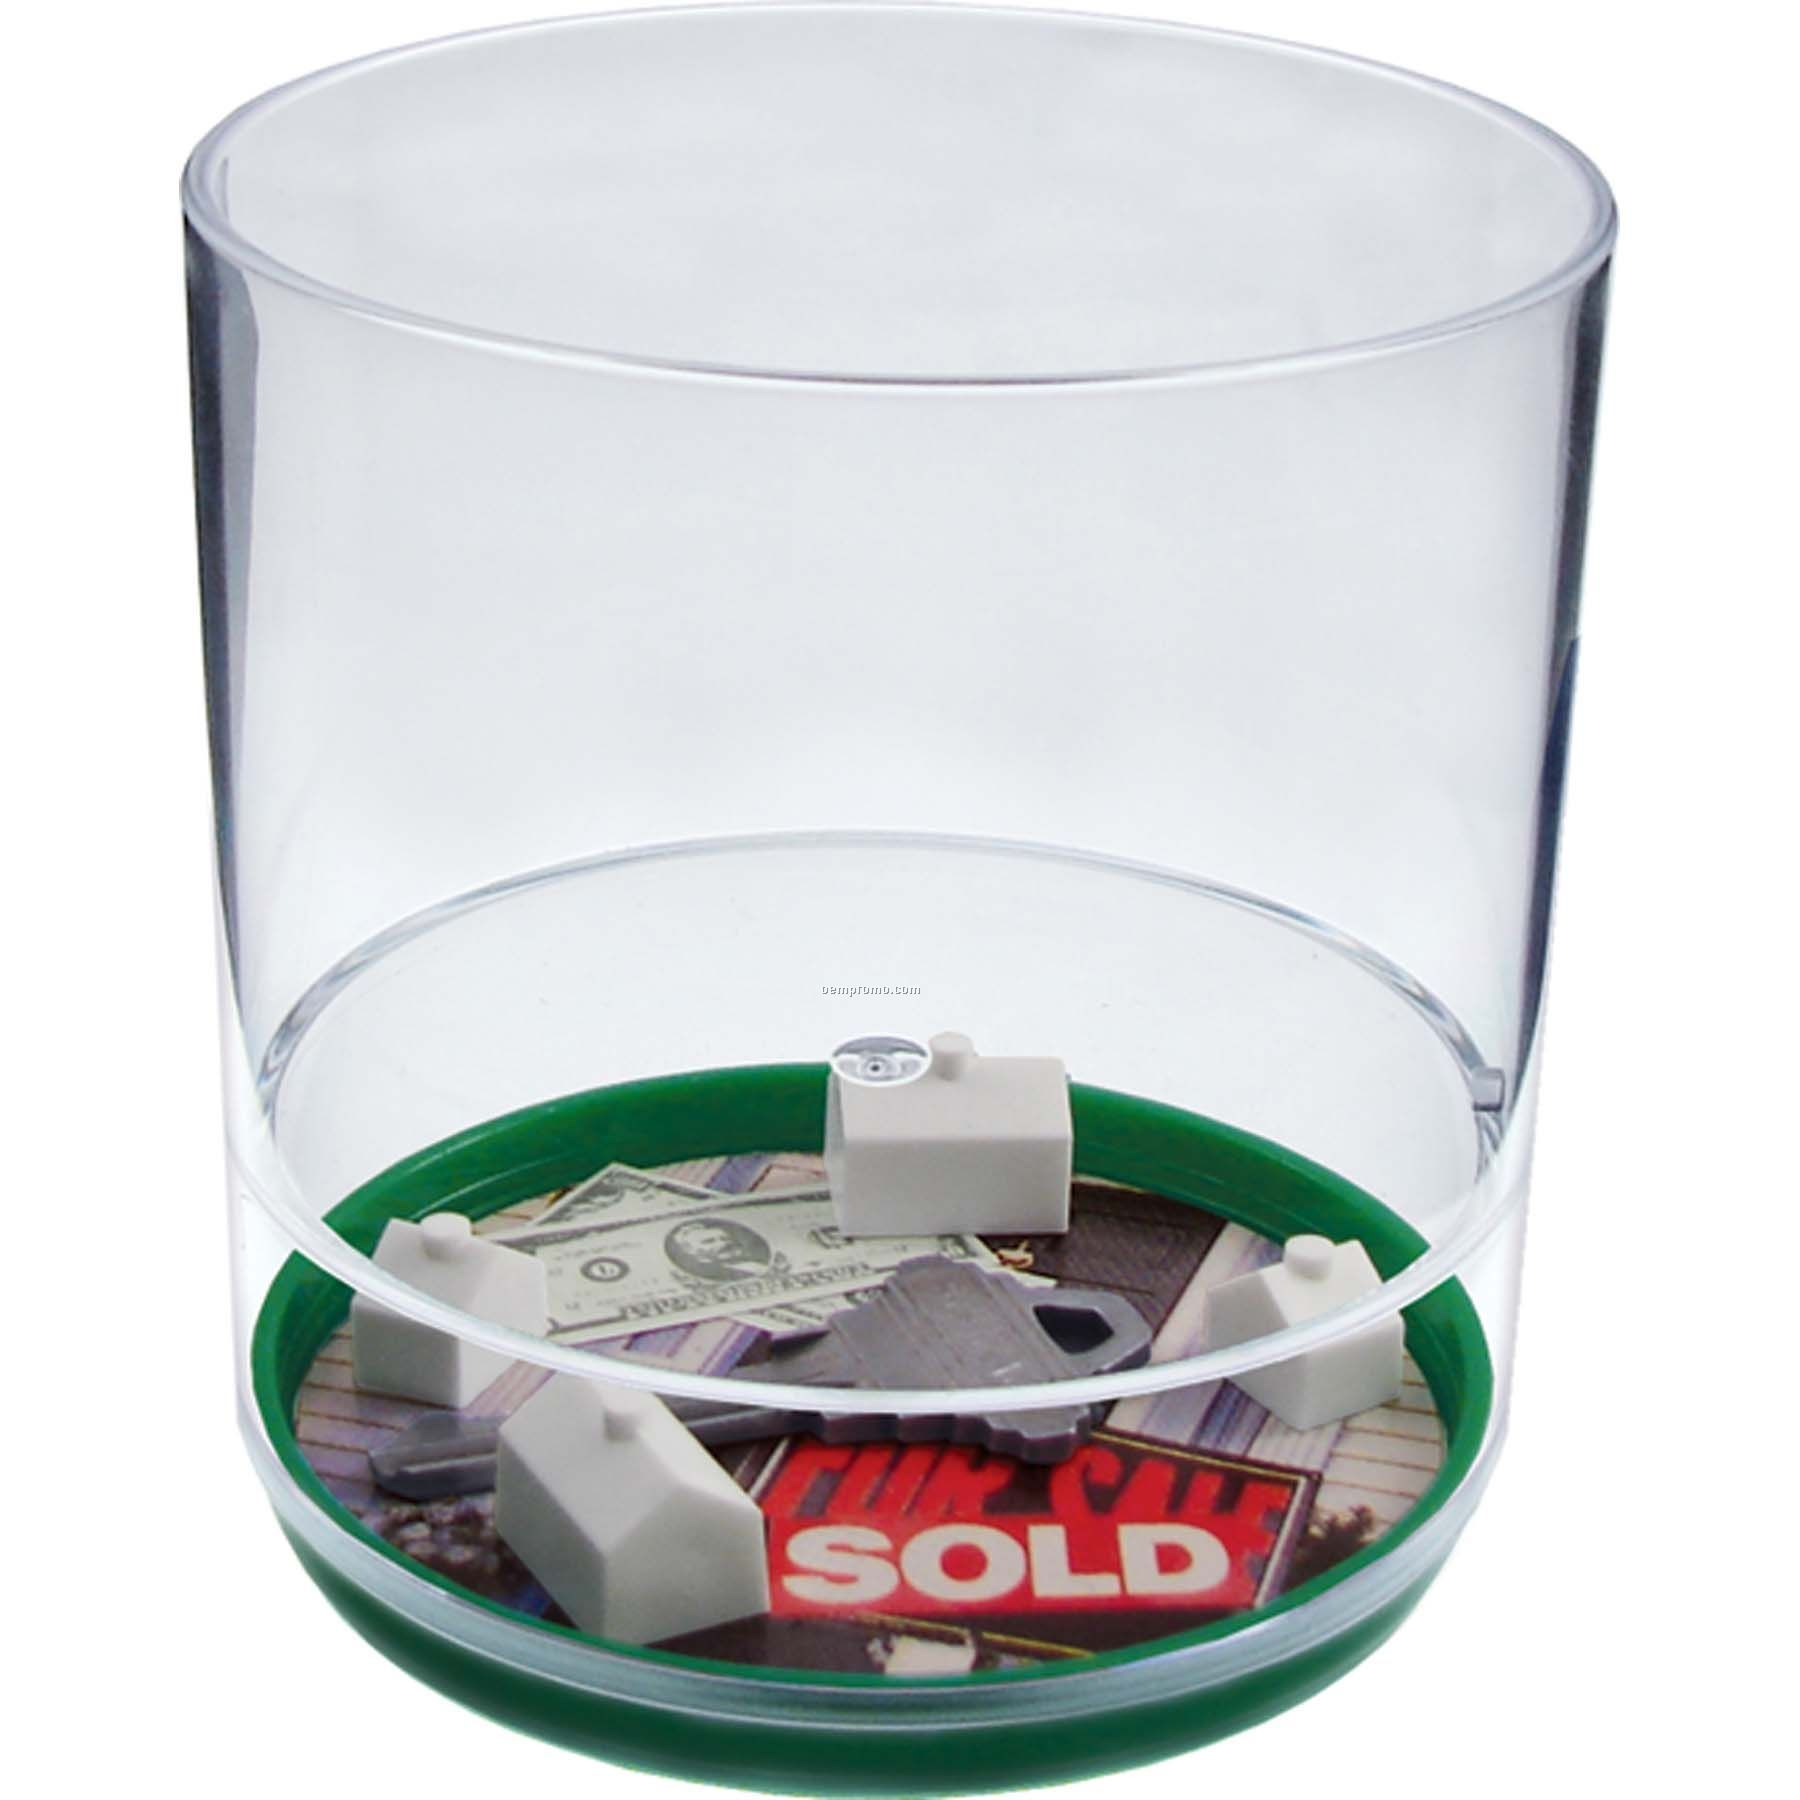 On The House 12 Oz. Compartment Tumbler